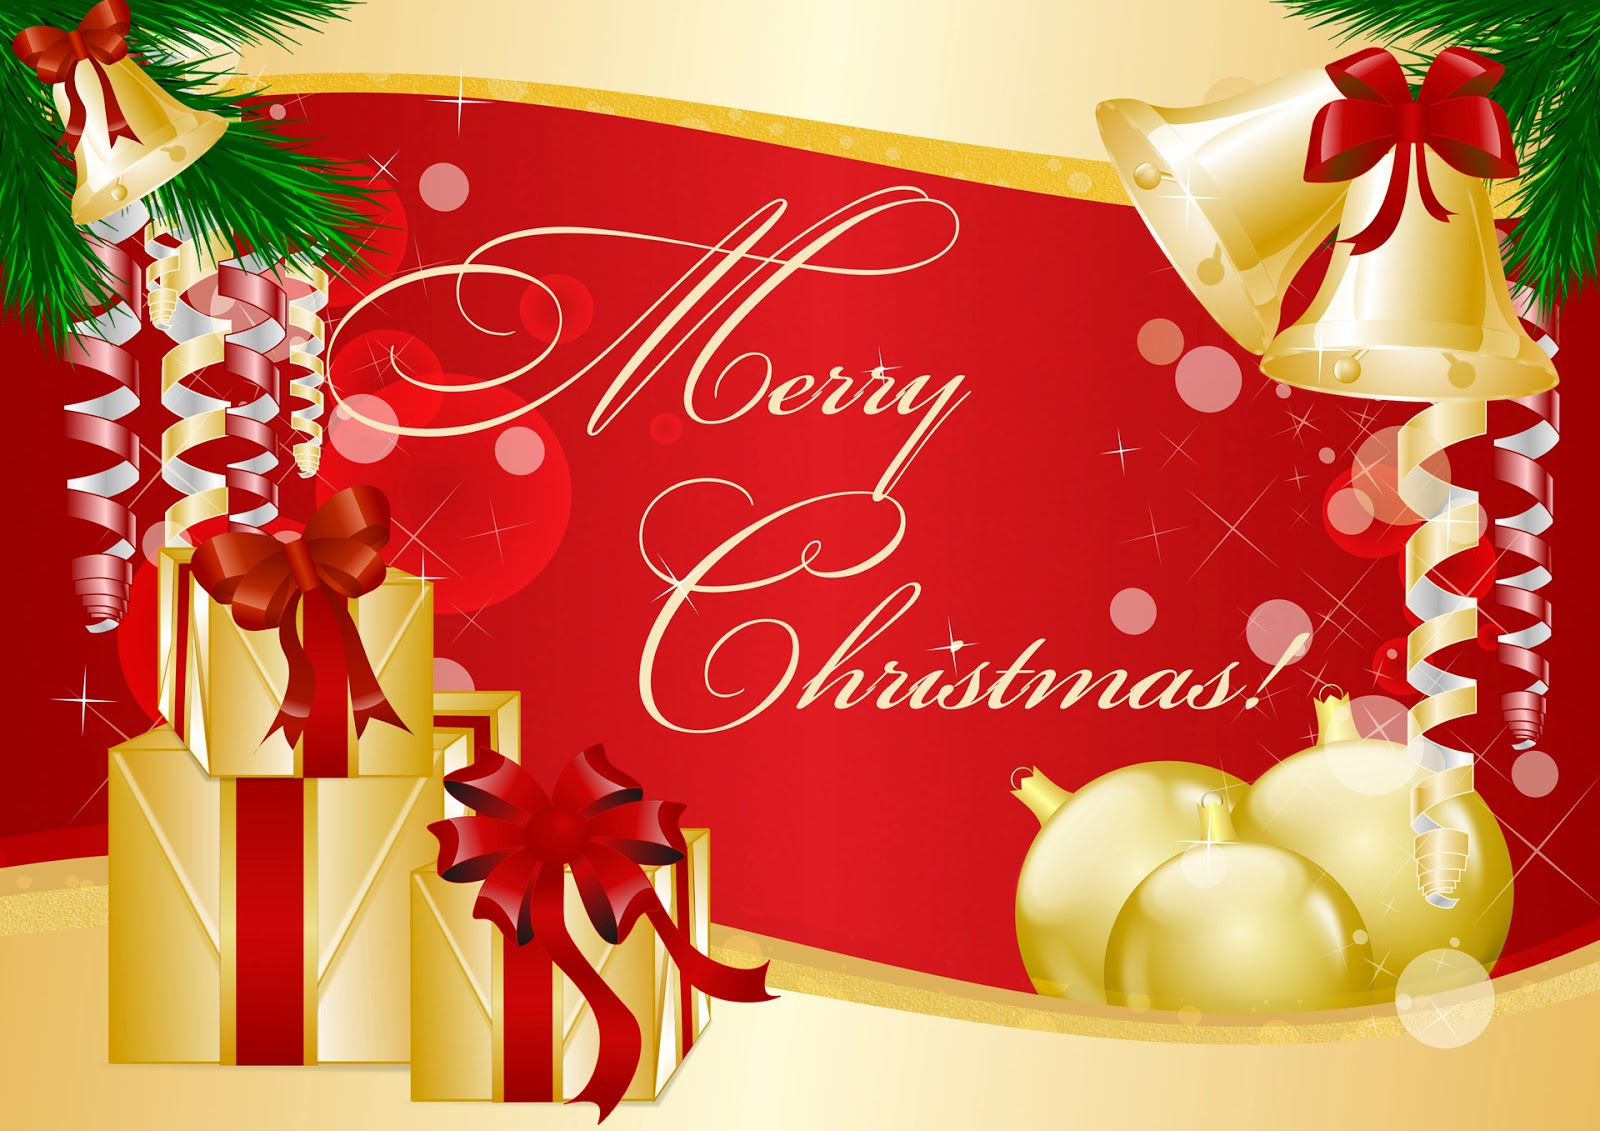 Happy Christmas Wishes with Images HD Free Download 2017 - Best ...